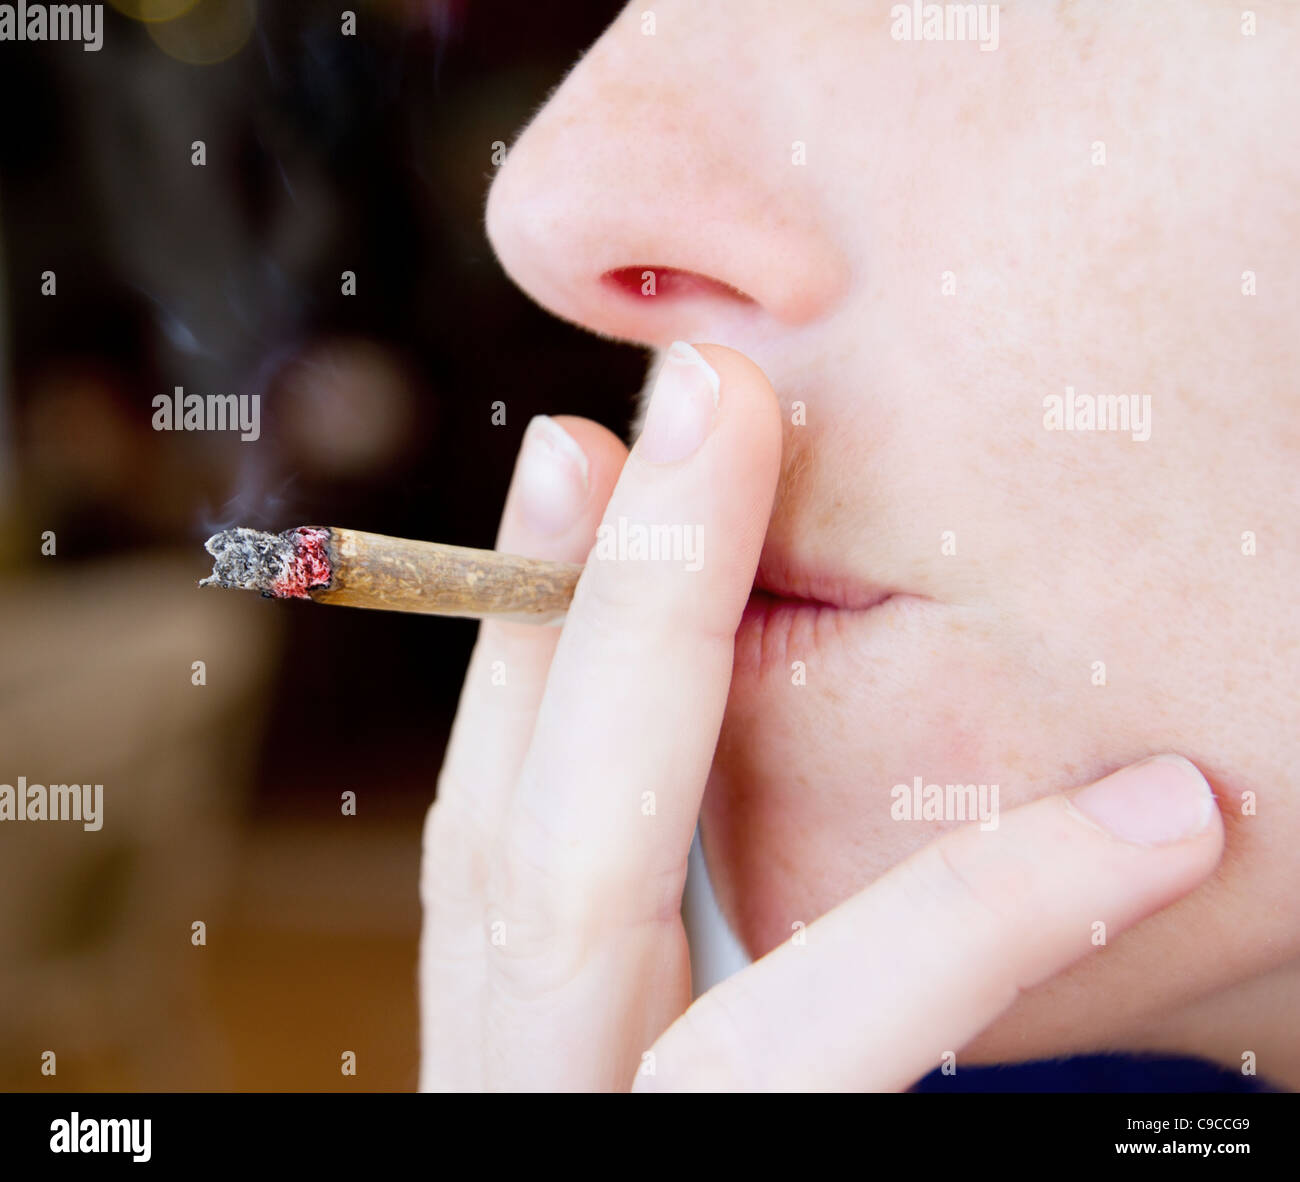 smoking joint closeup with smoke like unhealthy tobacco - Stock Image